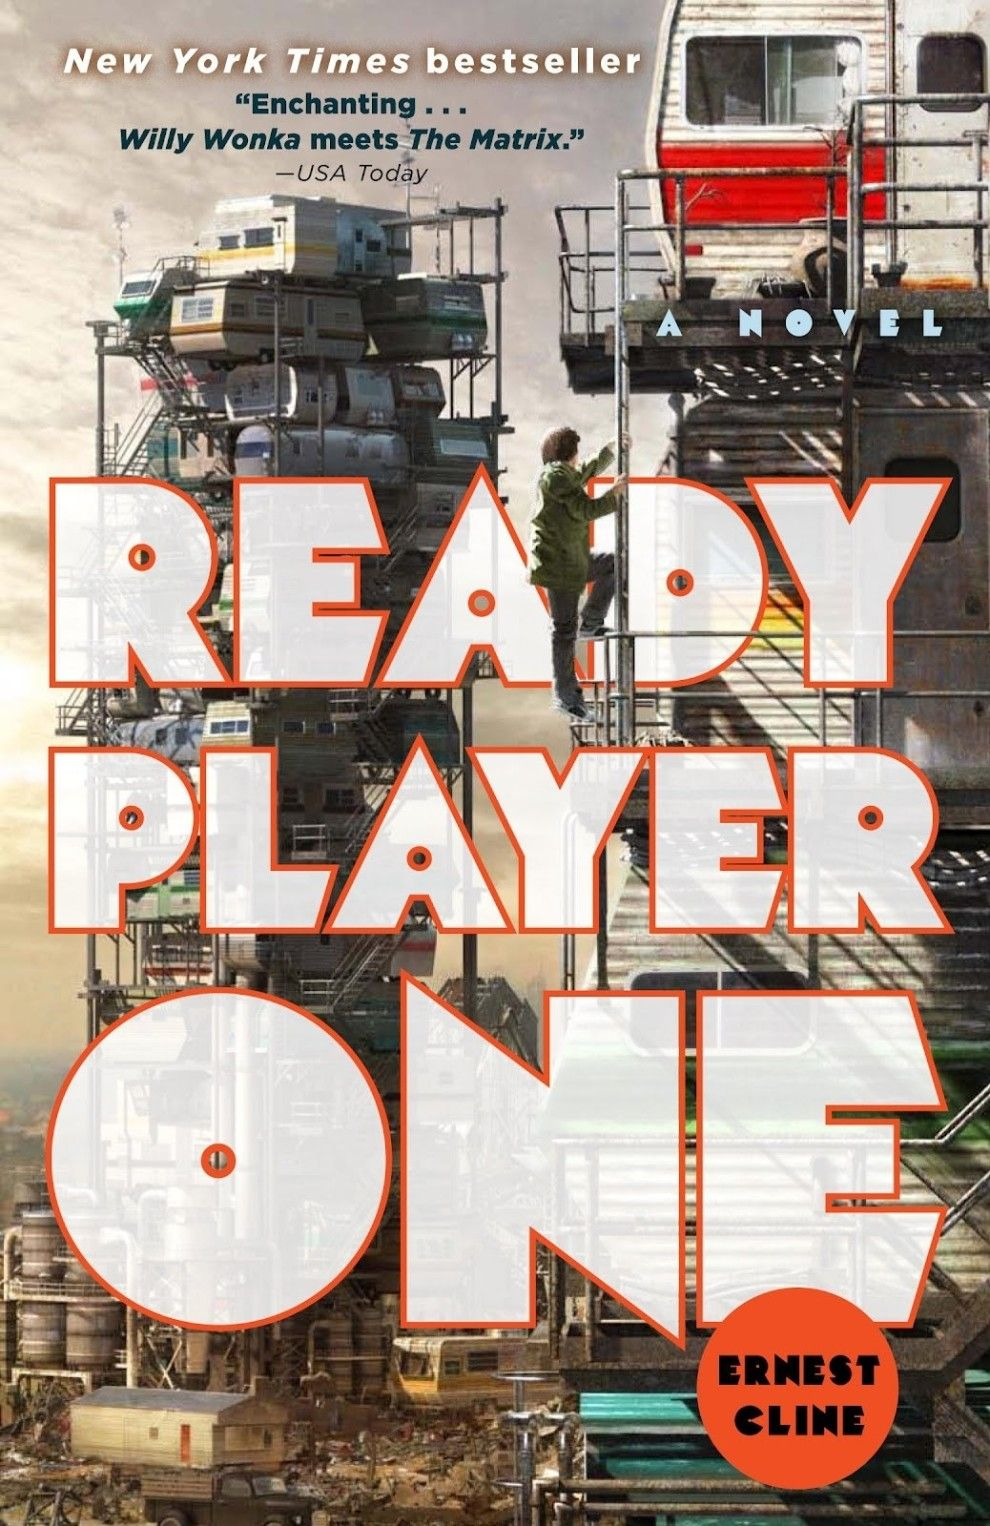 19 Awesome Products From Amazon To Put On Your Wish List Ready Player One Player One Ready Player Two